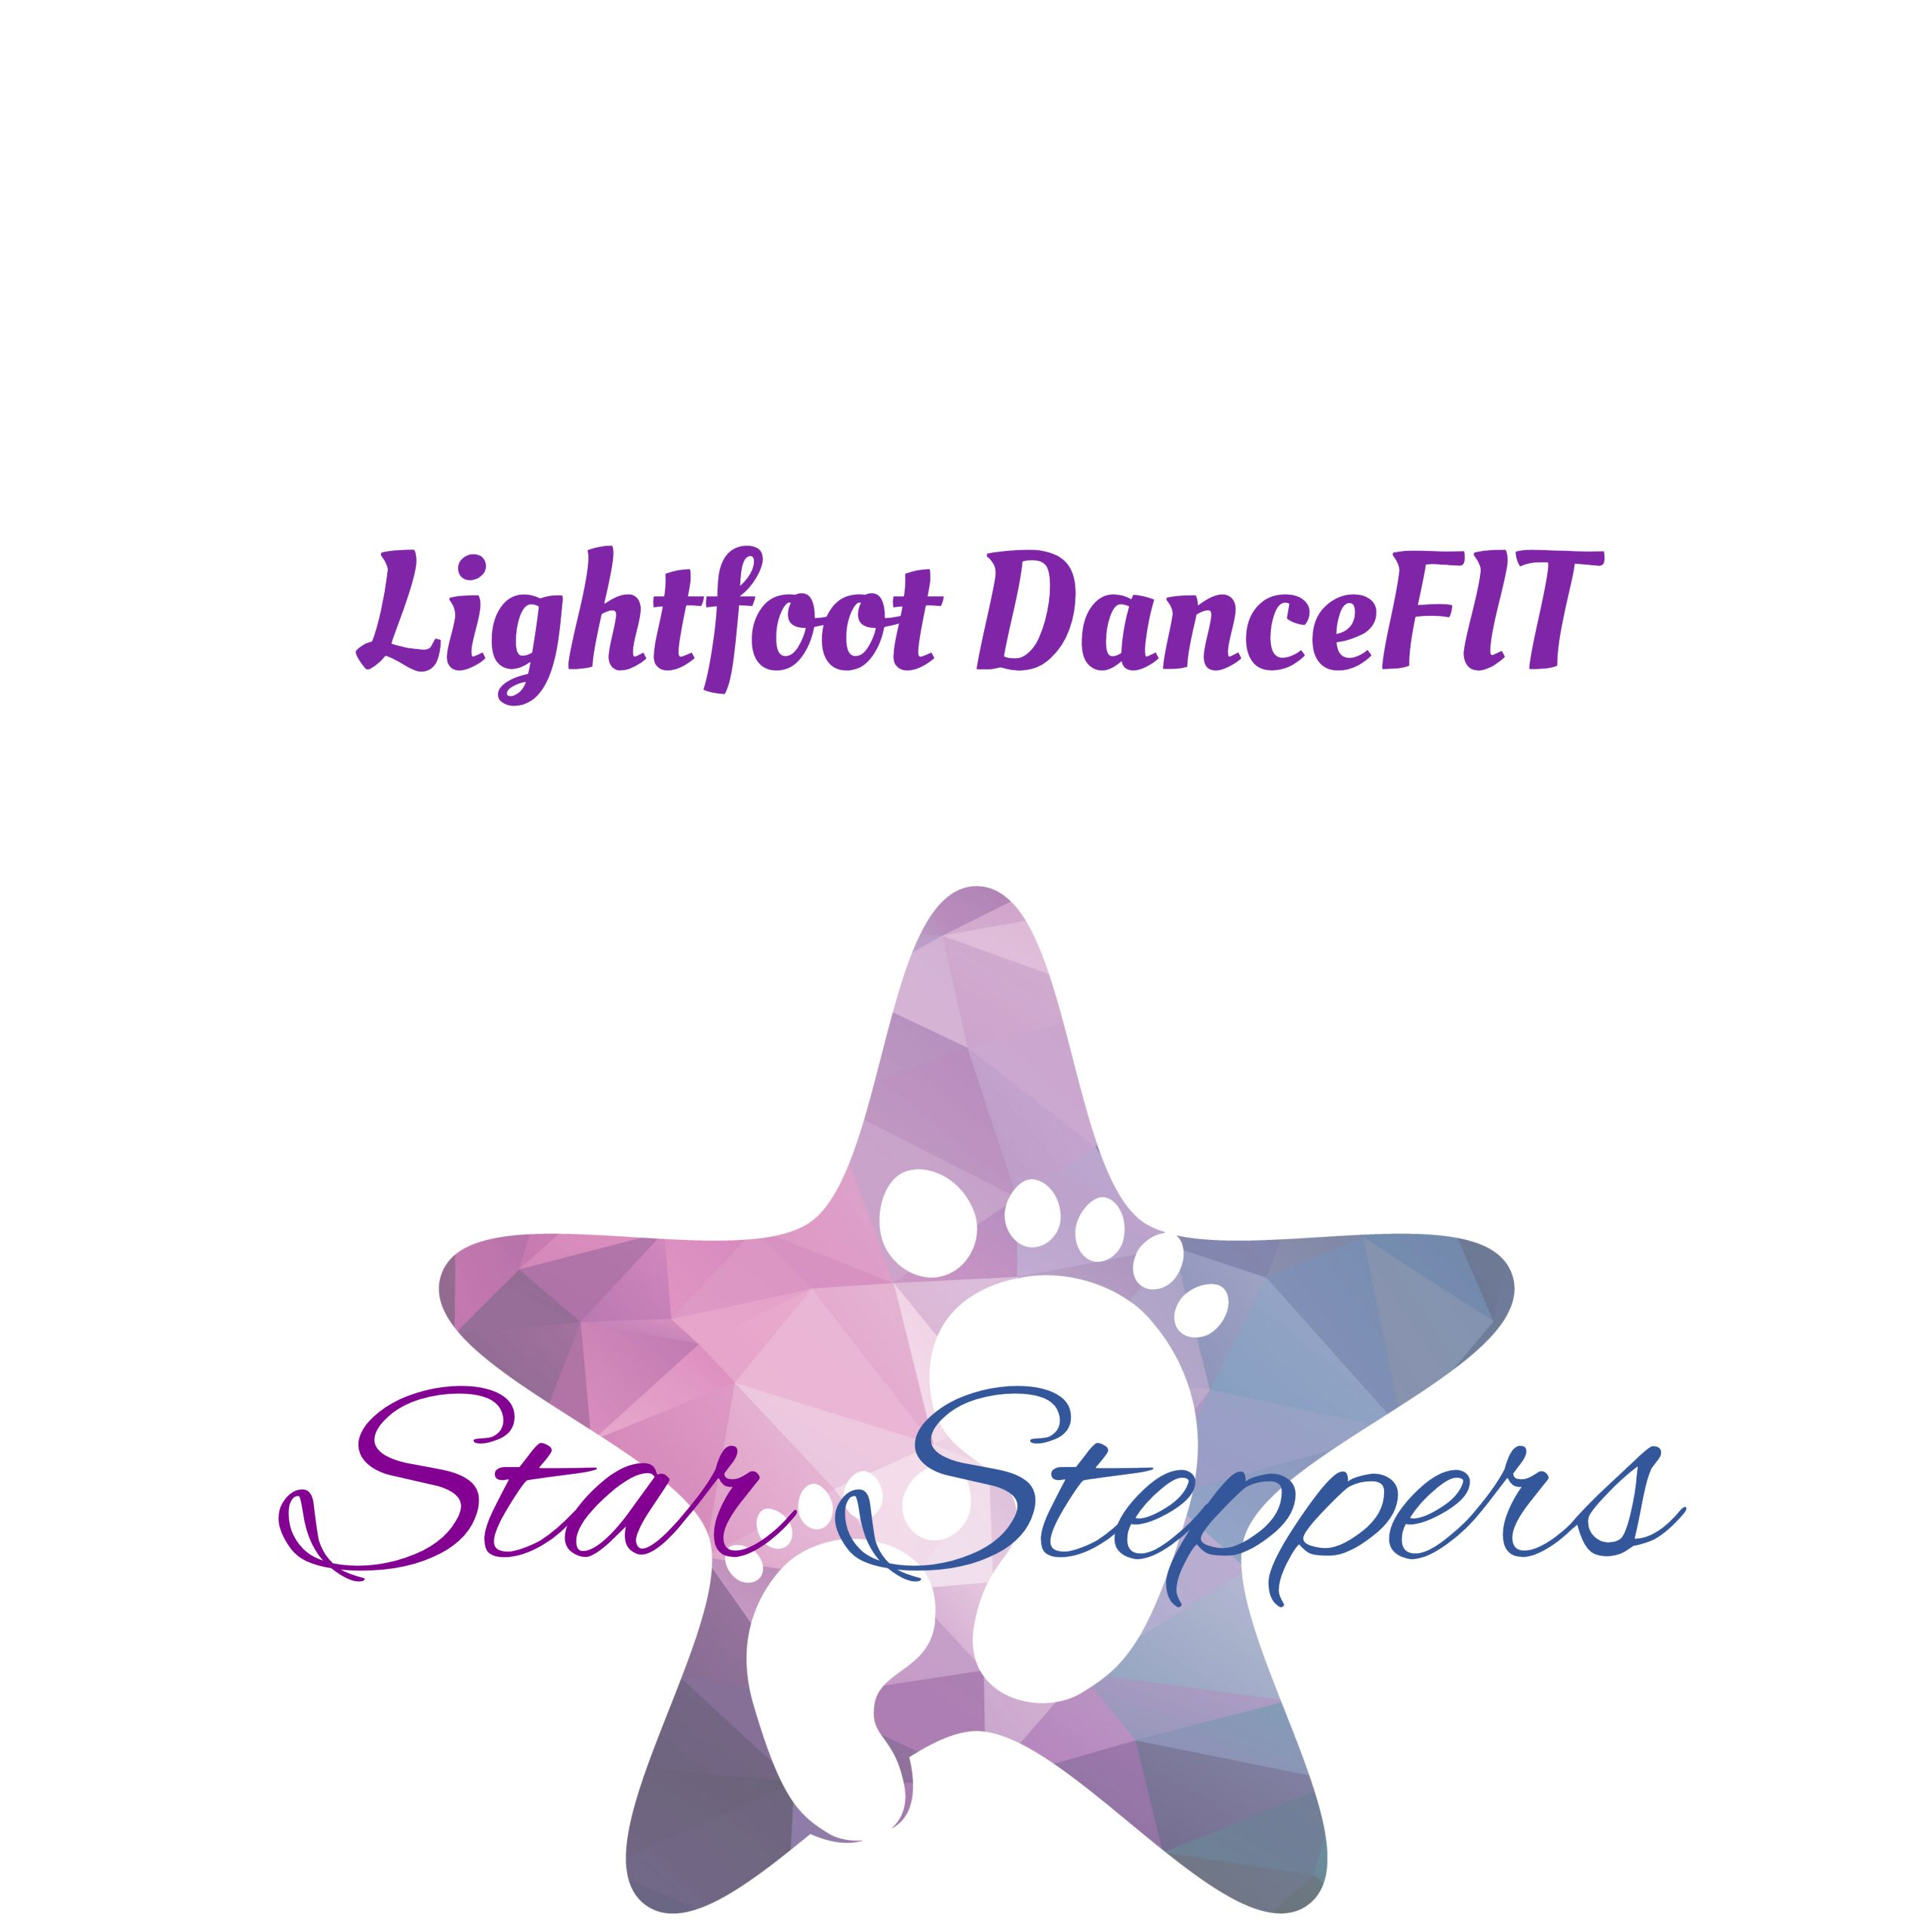 Lightfoot DanceFIT Star Steppers logo